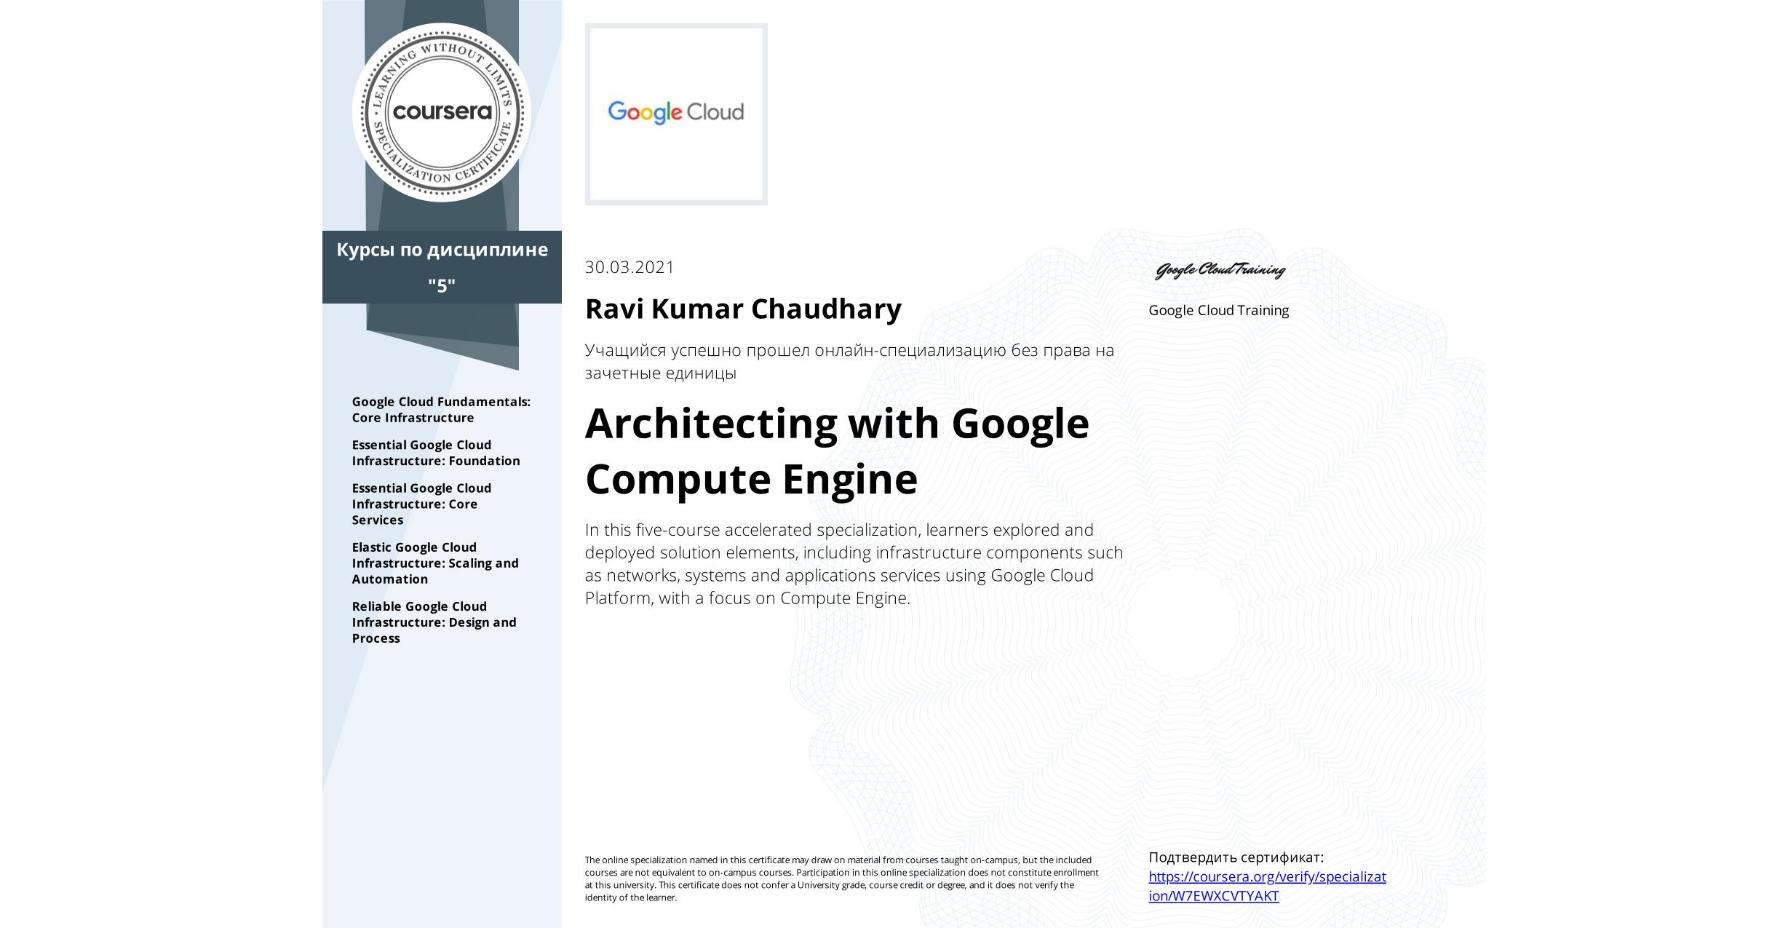 View certificate for Ravi Kumar Chaudhary, Architecting with Google Compute Engine, offered through Coursera. In this five-course accelerated specialization, learners explored and deployed solution elements, including infrastructure components such as networks, systems and applications services using Google Cloud Platform, with a focus on Compute Engine.